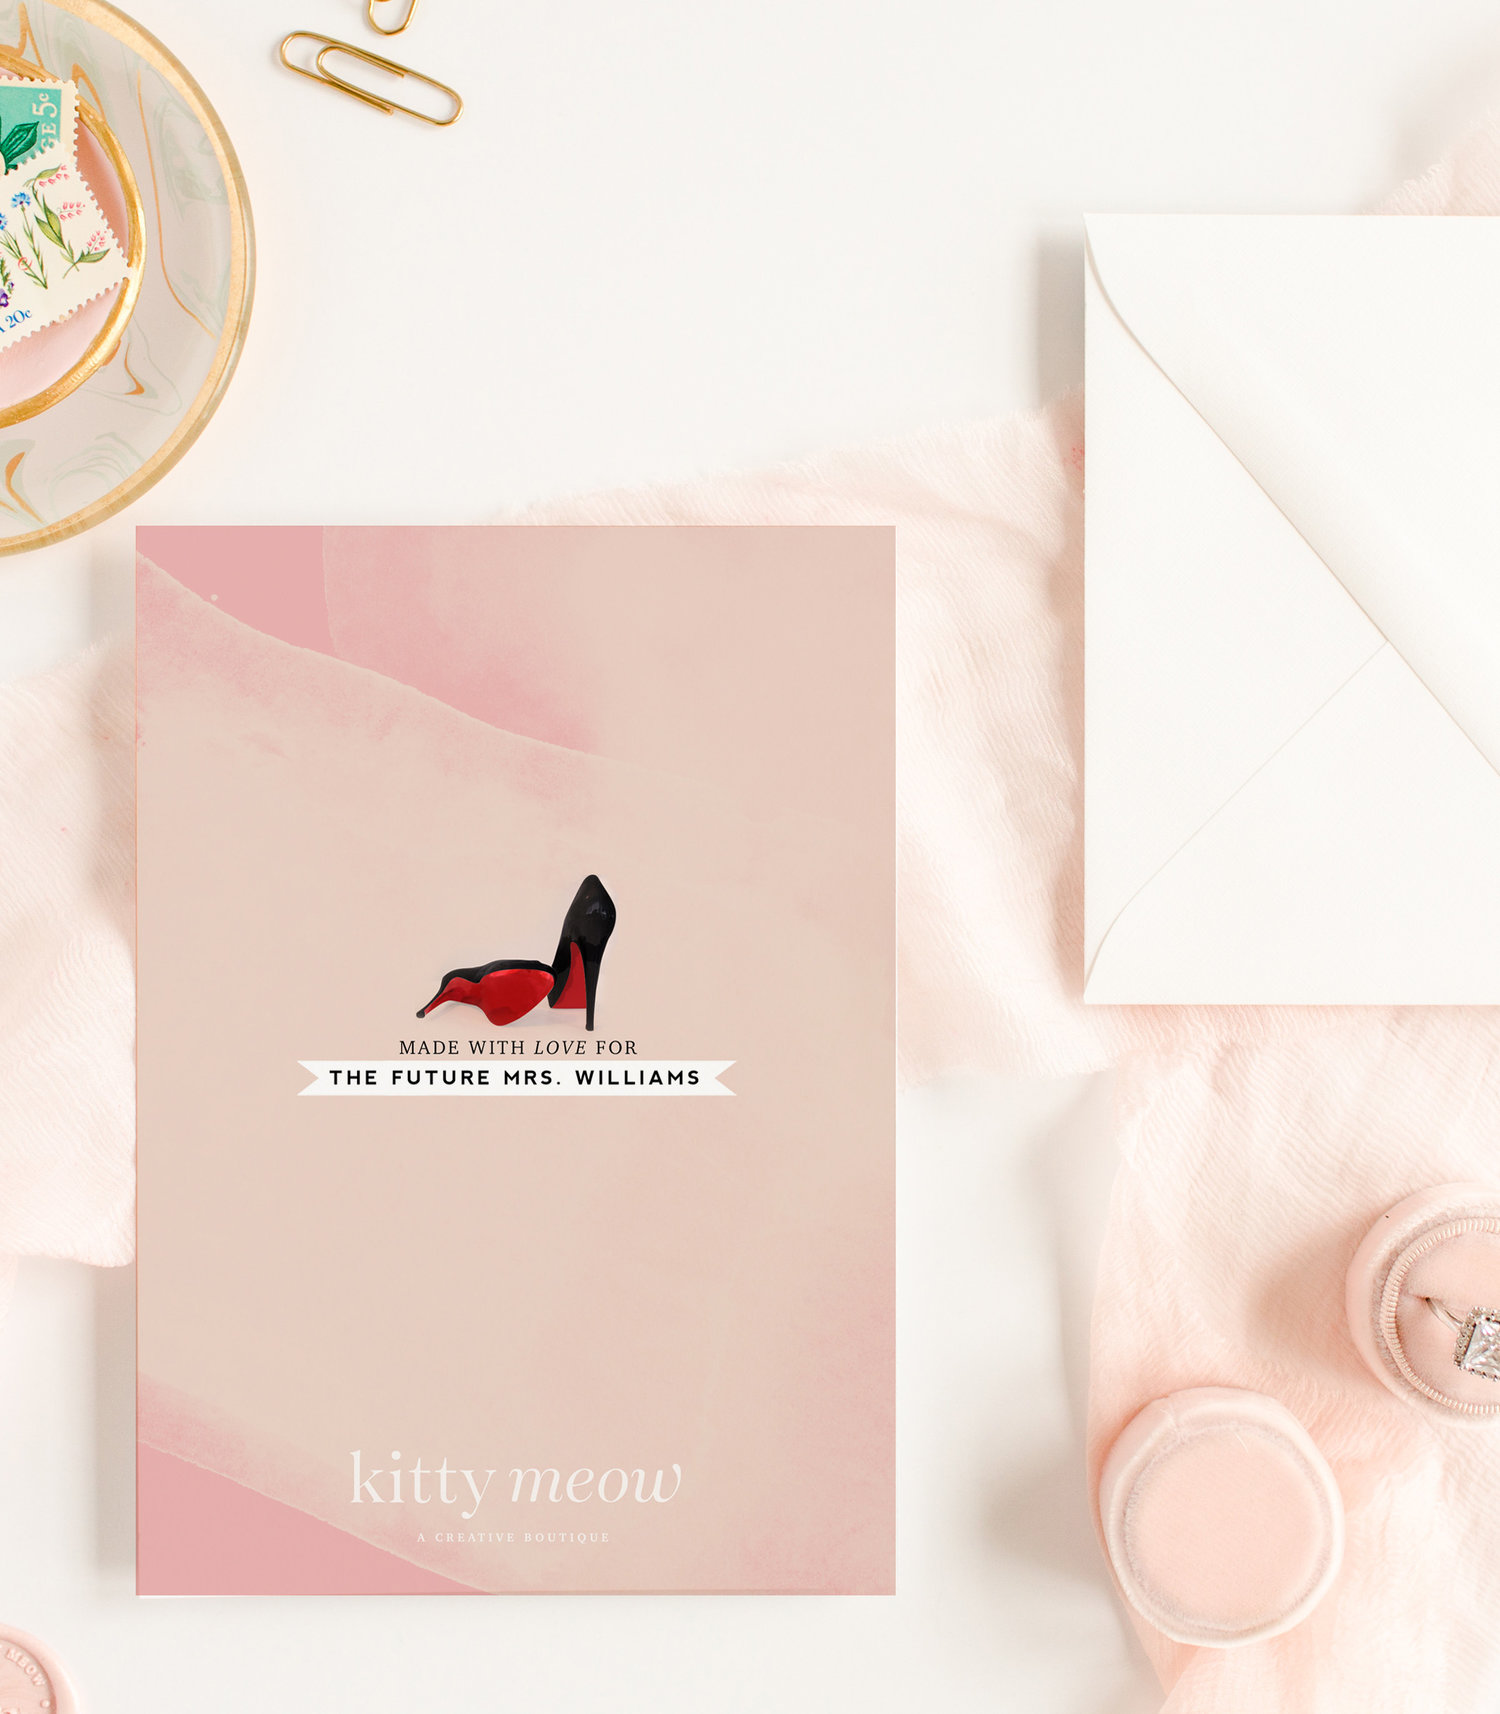 red bottoms las vegas bachelorette party weekend invitation for bride to be